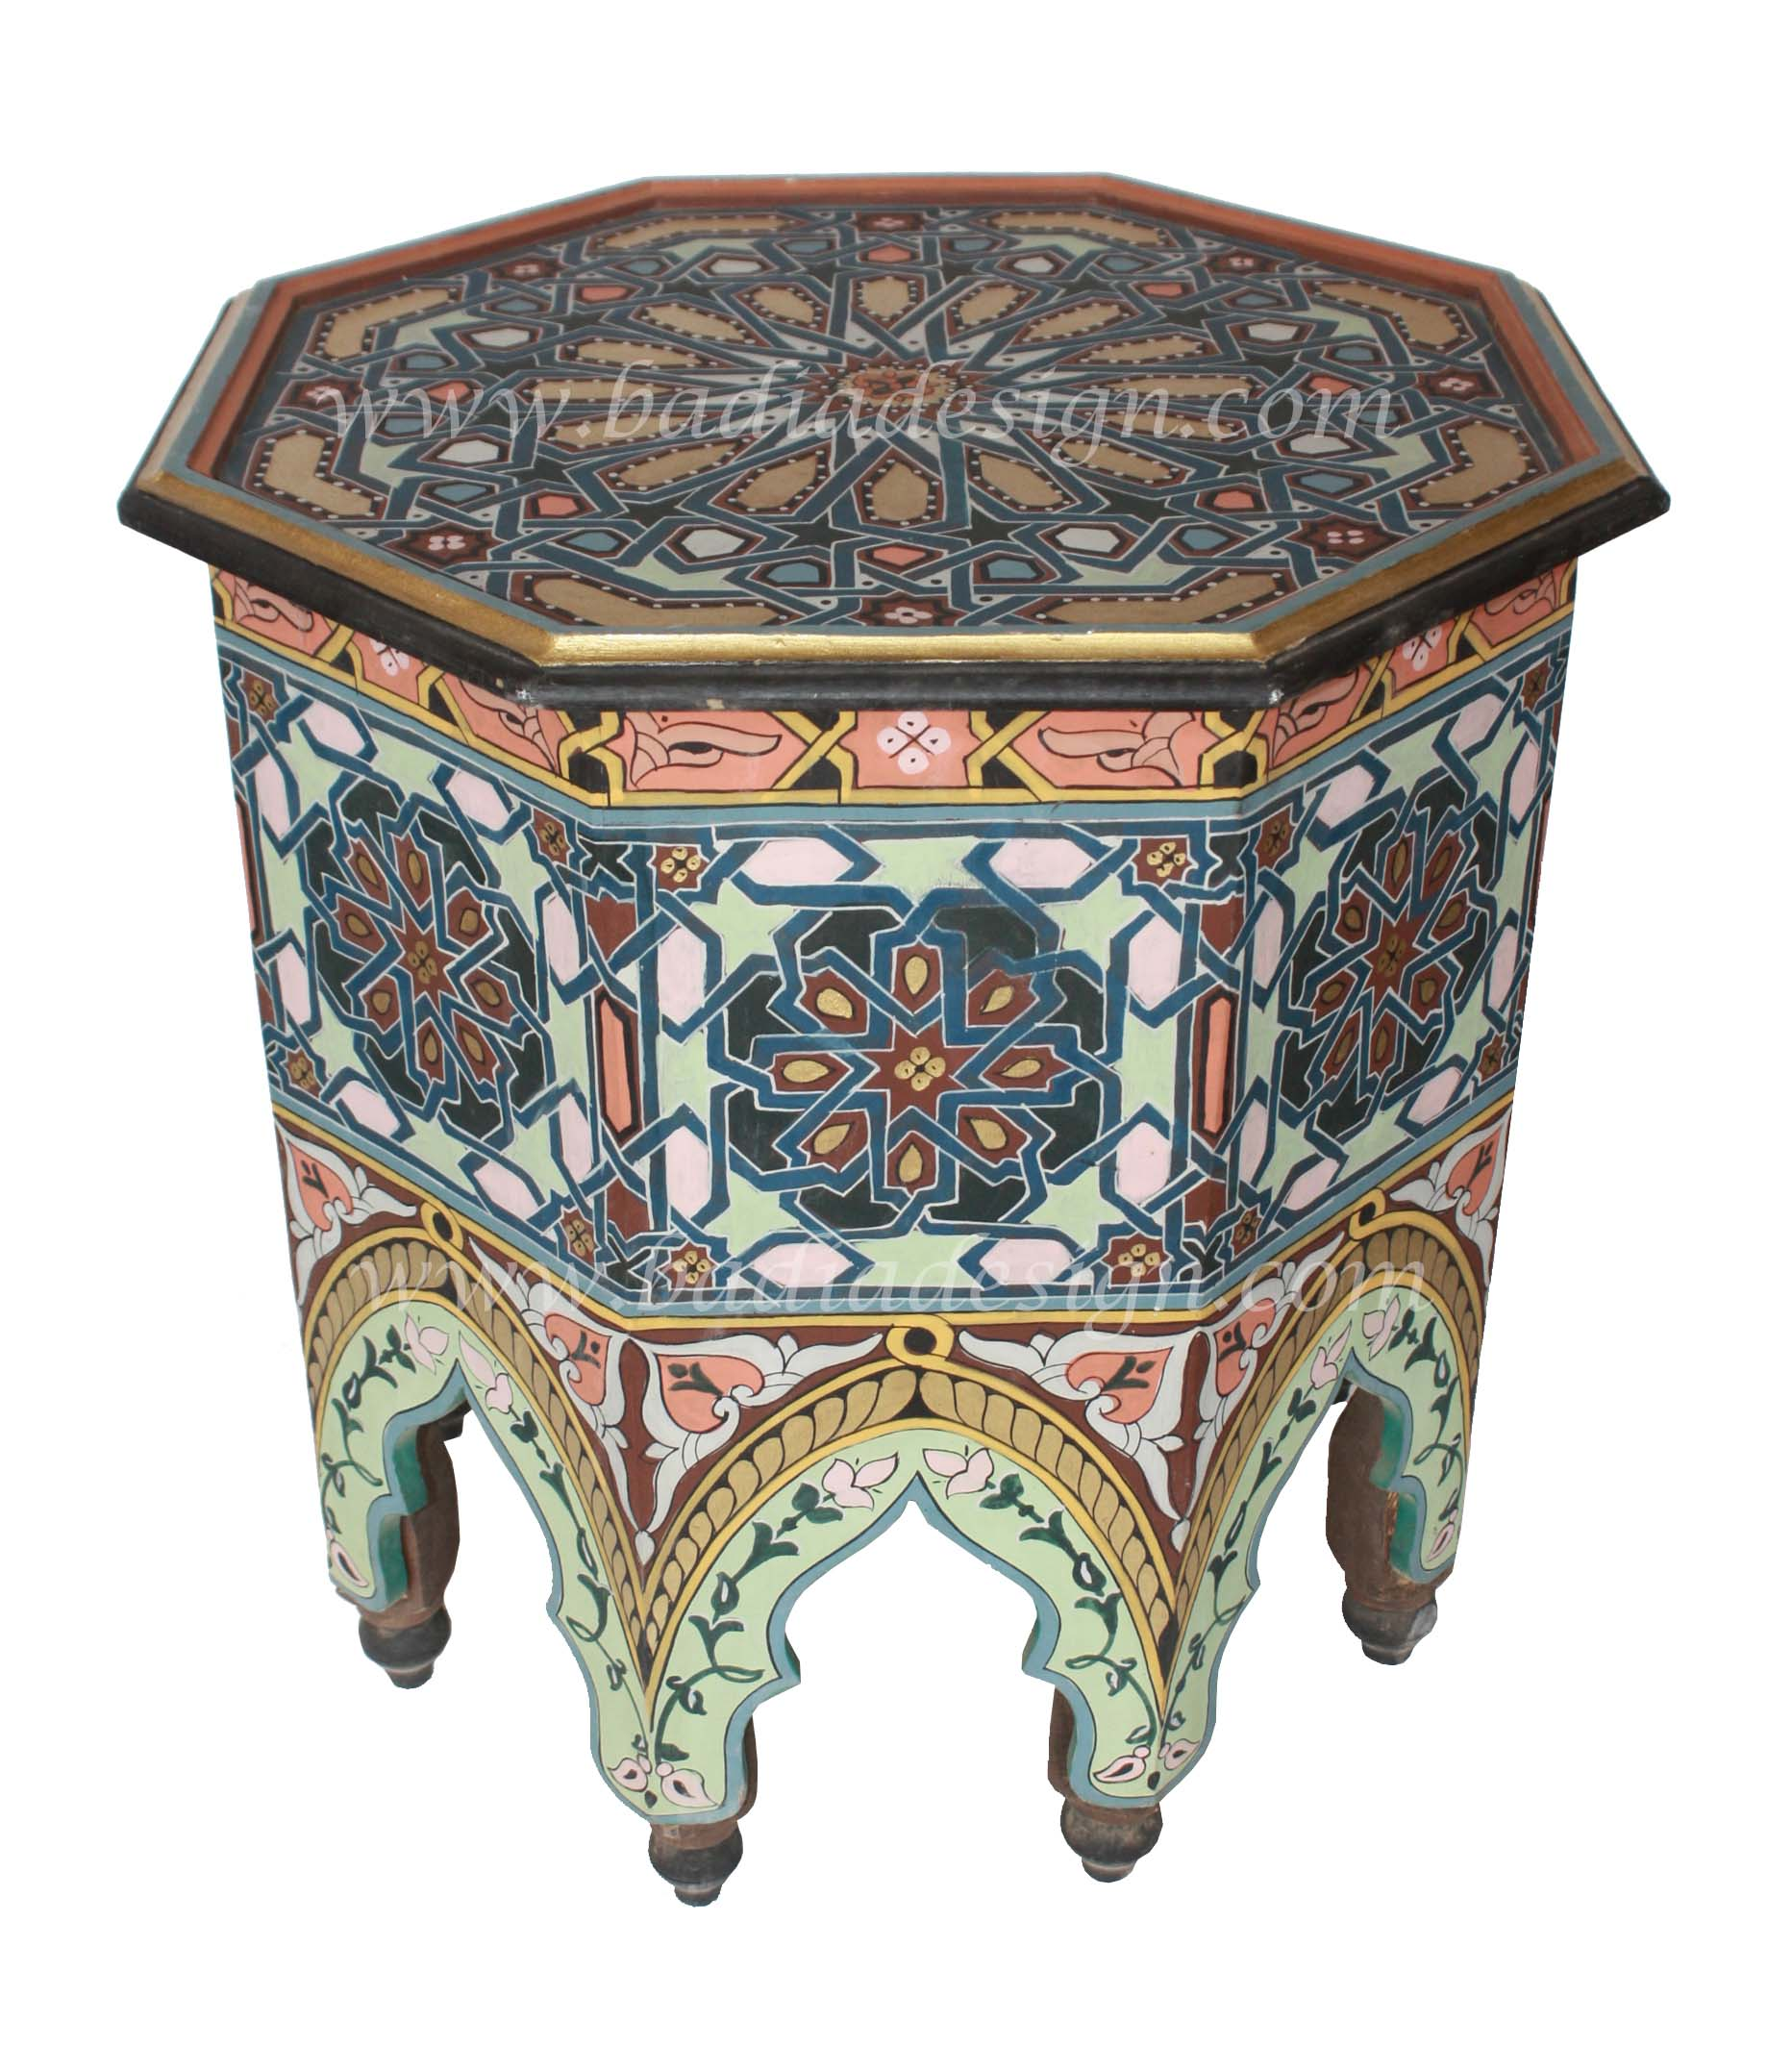 moroccan-hand-painted-side-table-hp011-1.jpg